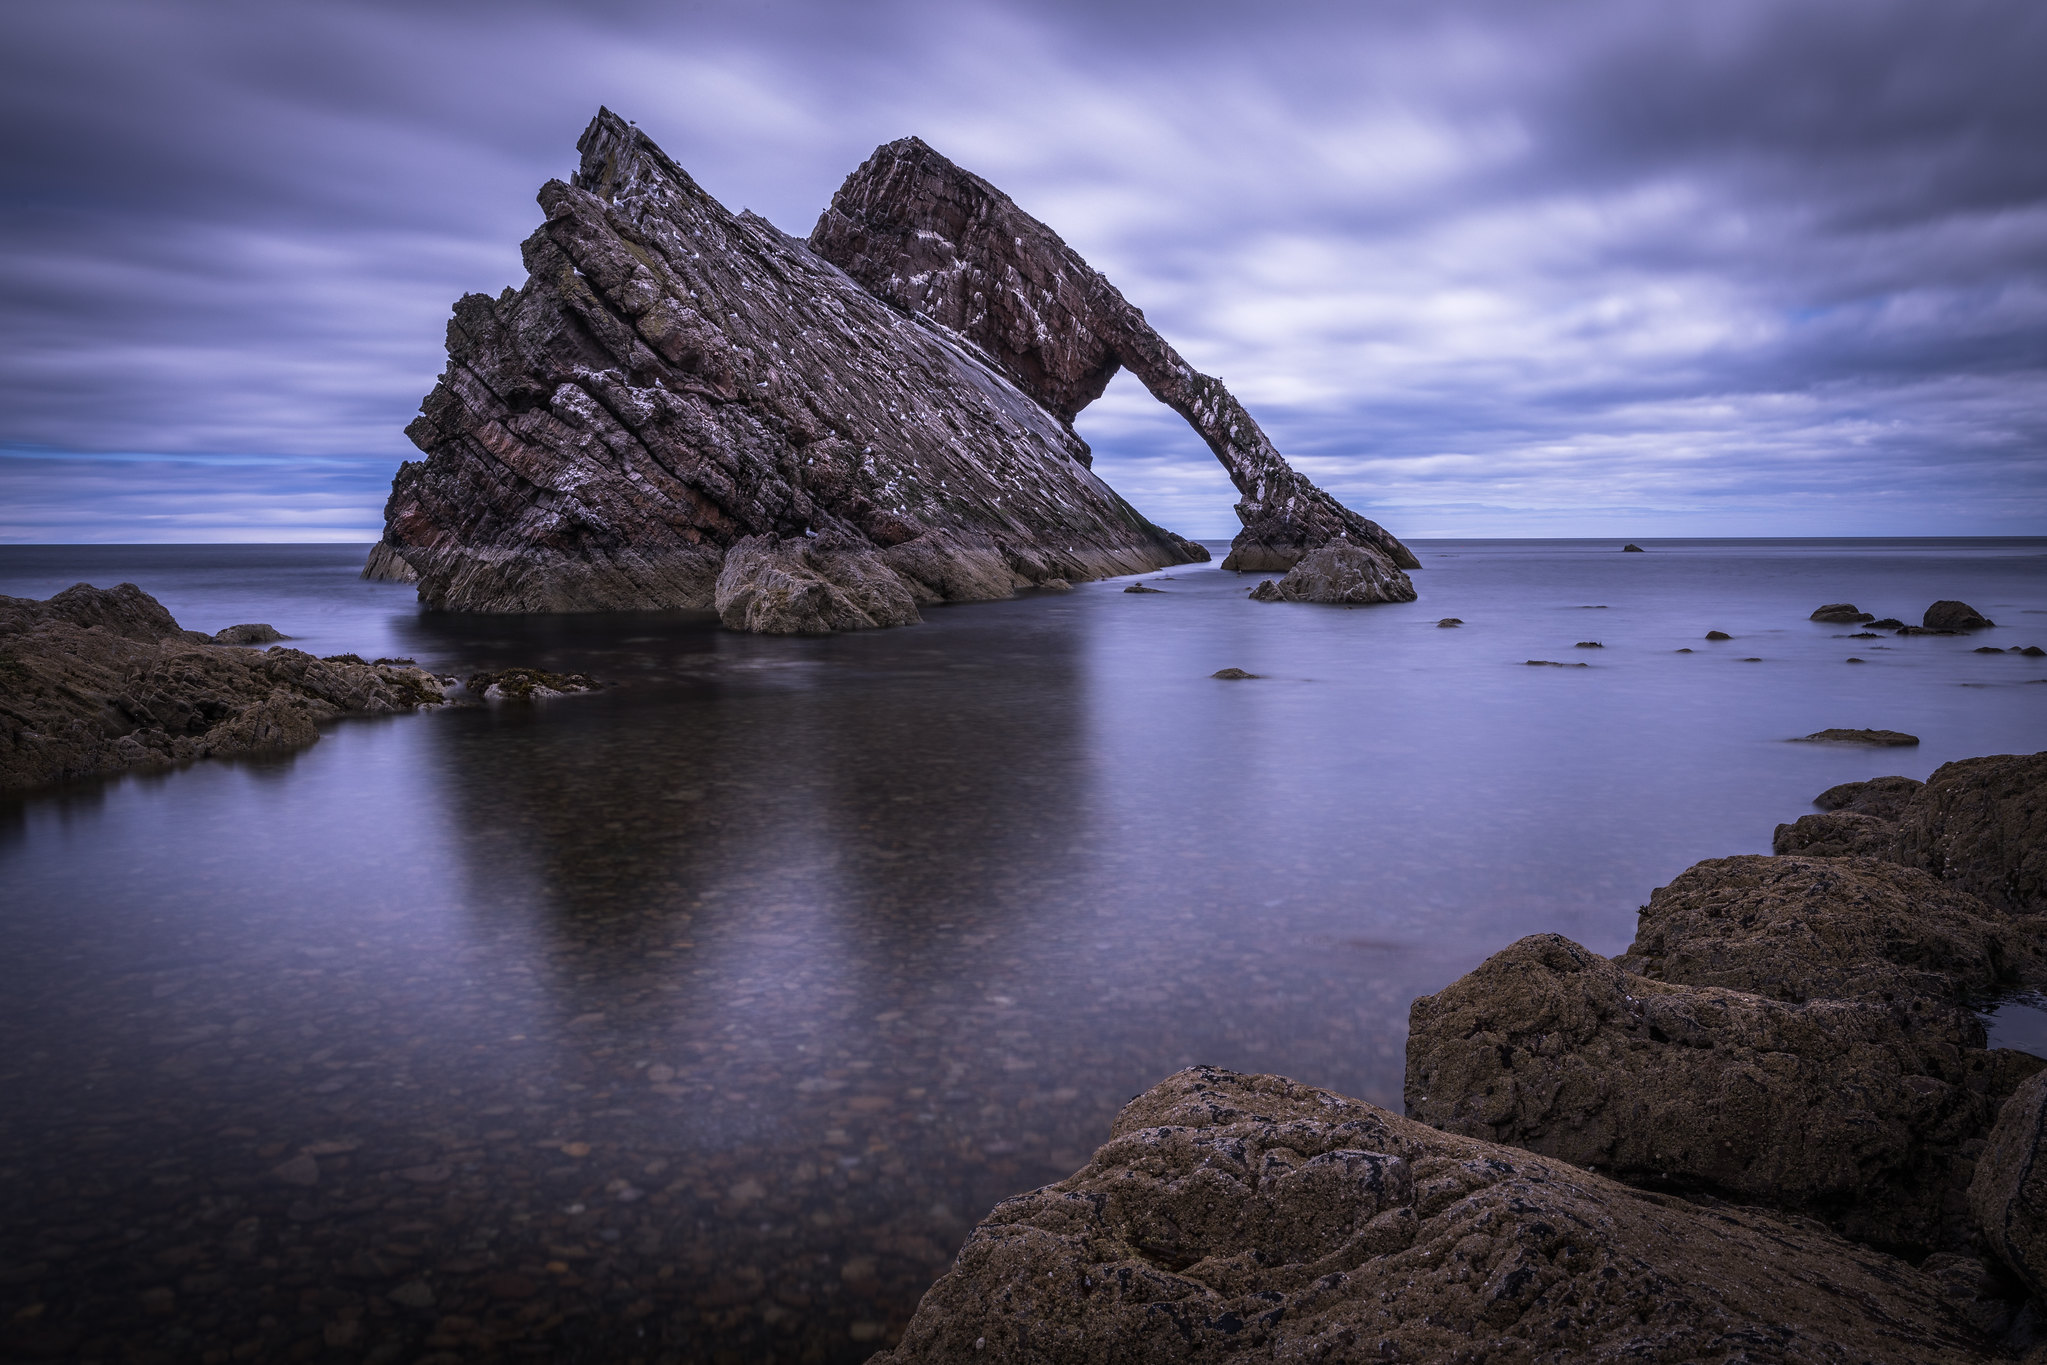 General 2047x1365 Scotland sea water rocks stones coast clouds Bow Fiddle Rock